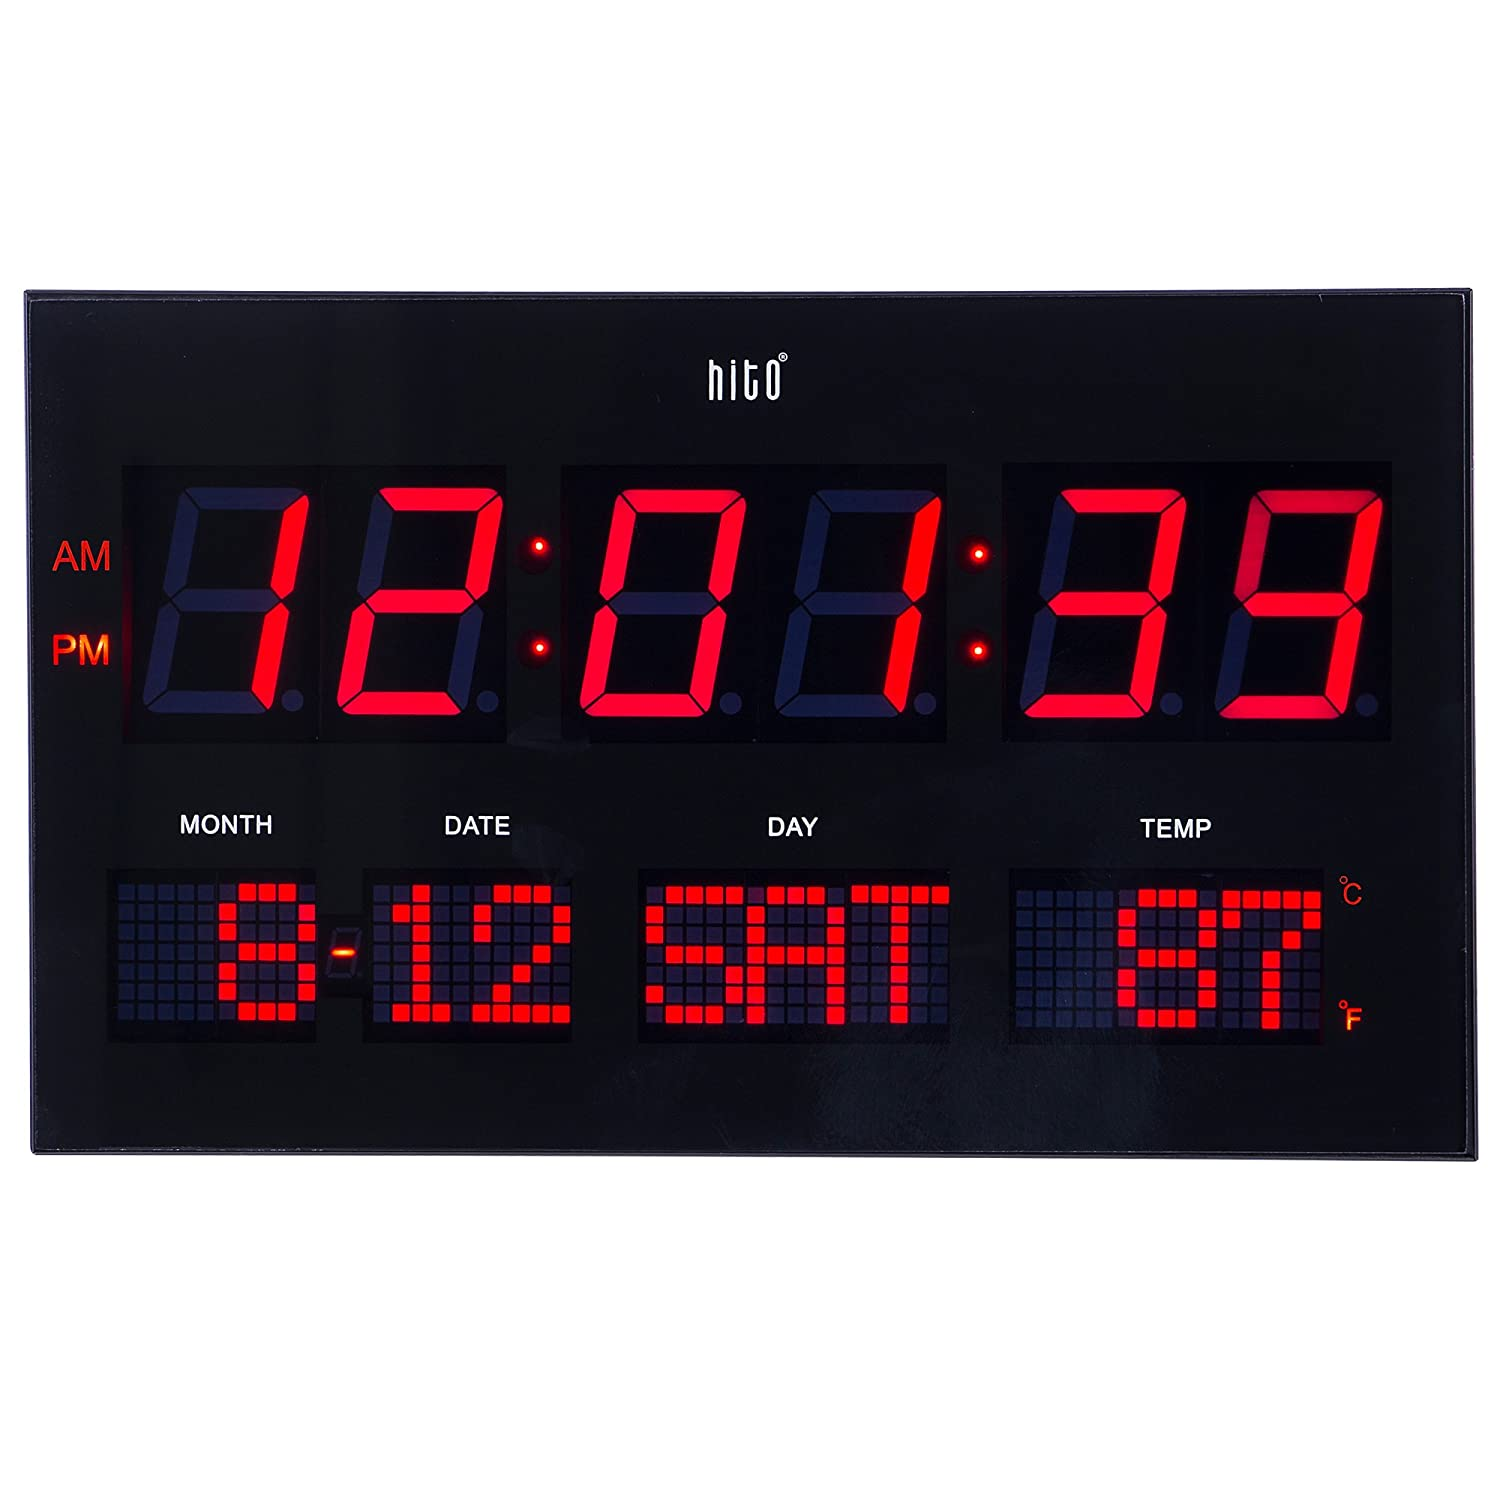 "hito 14.2"" Large Oversized LED Wall Clock Seconds Date Day Indoor Temperature Adjustable Brightness Memory Function Adapter Included Decorative for Living Room Office Conference Room Bedroom (Blue) hitoseller ht6033"